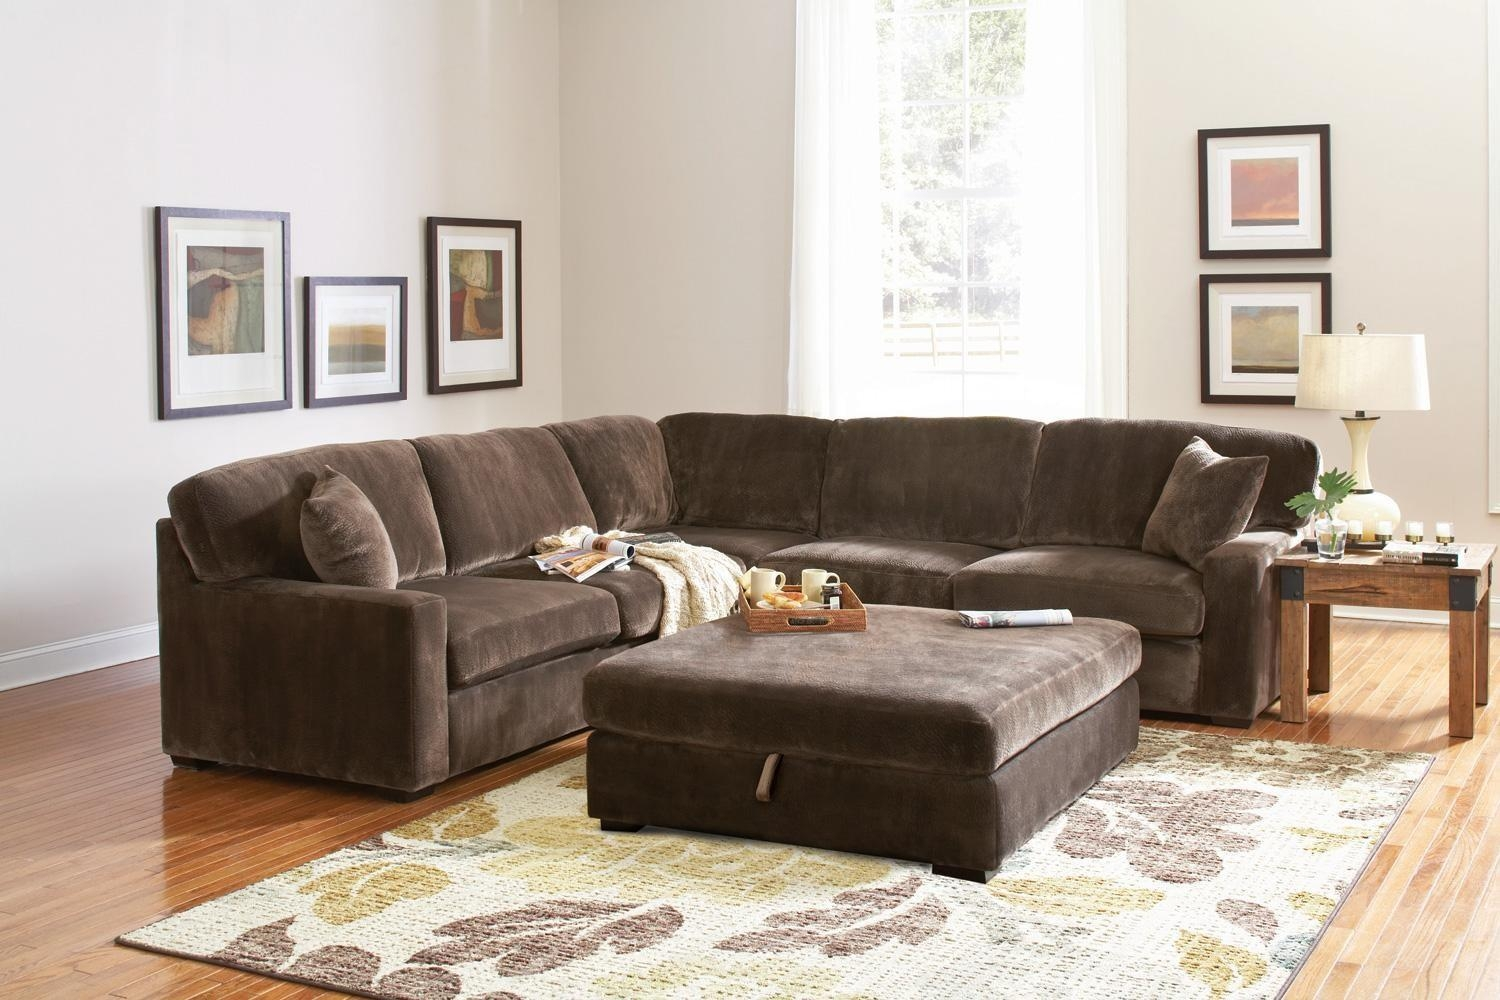 Furniture: Classic And Traditional Style Velvet Sectional Sofa For Throughout Small Modular Sectional Sofa (View 19 of 20)